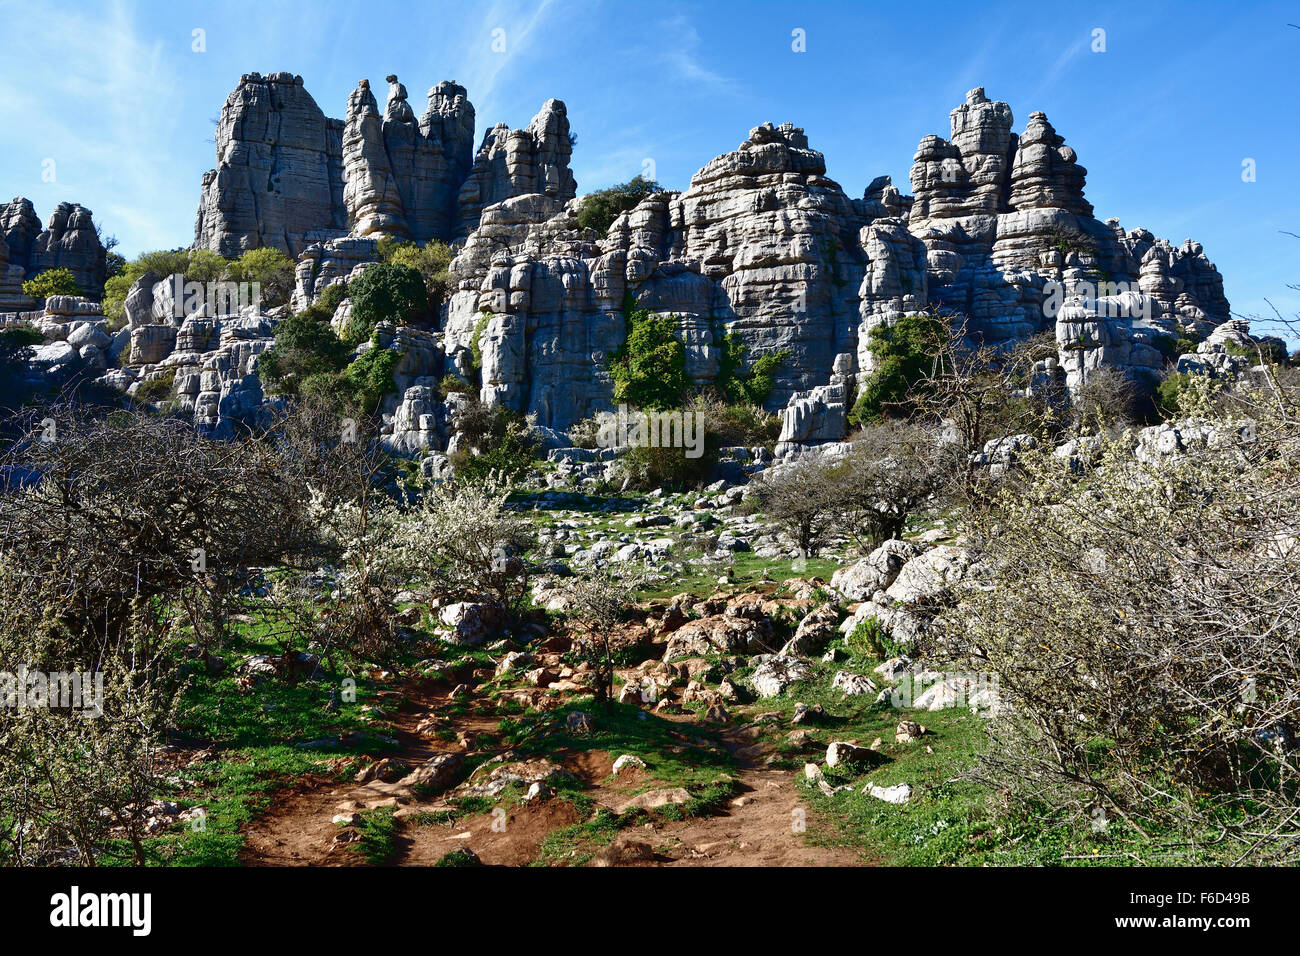 Torcal de Antequera is a nature reserve in the Sierra del Torcal, mountain range located south of the city of Antequera. - Stock Image